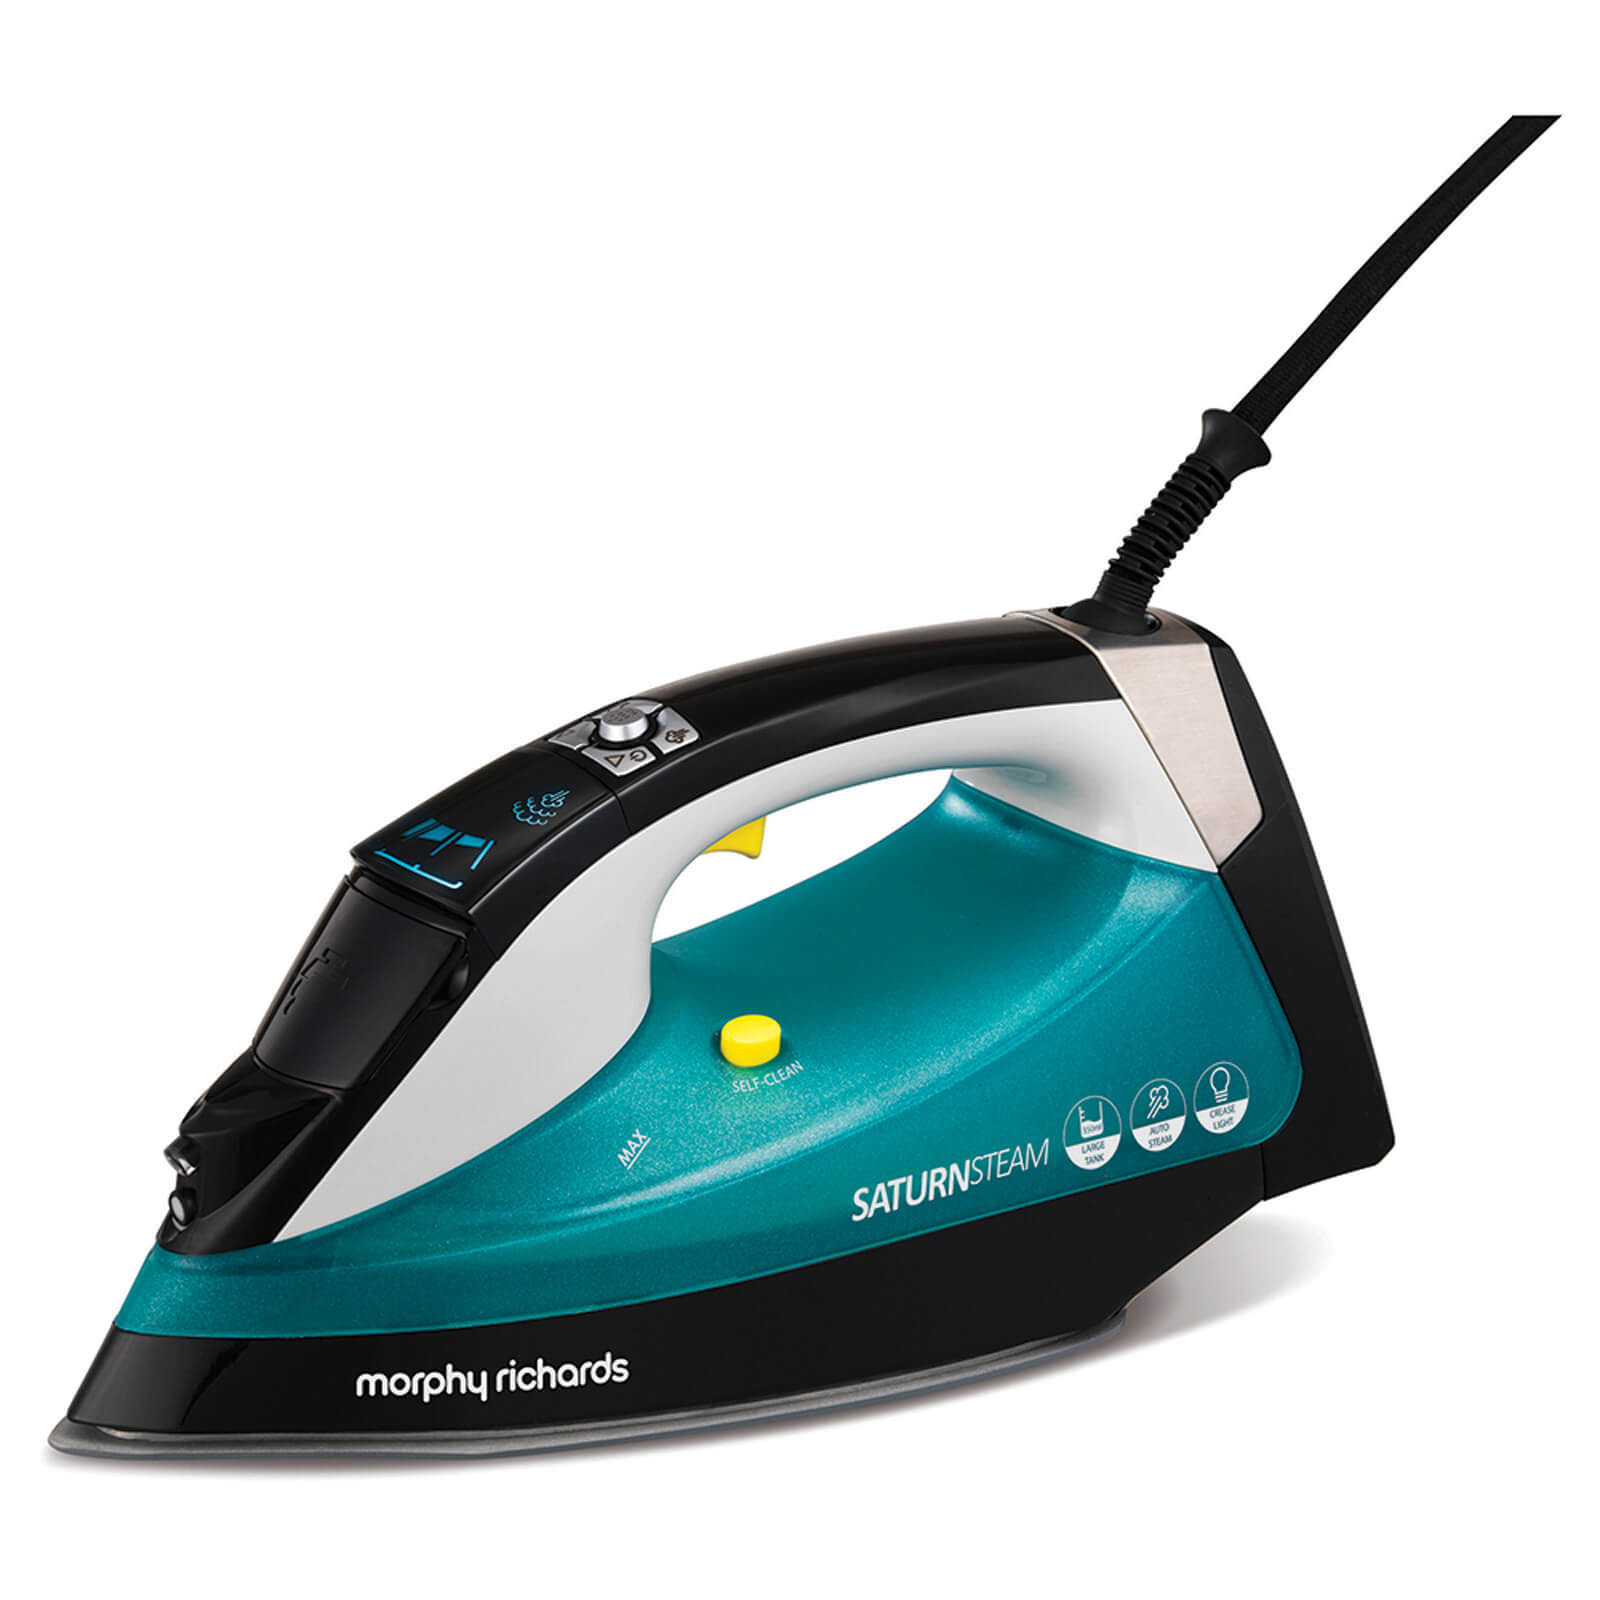 Morphy Richards Saturn Steam Iron - Black/Green